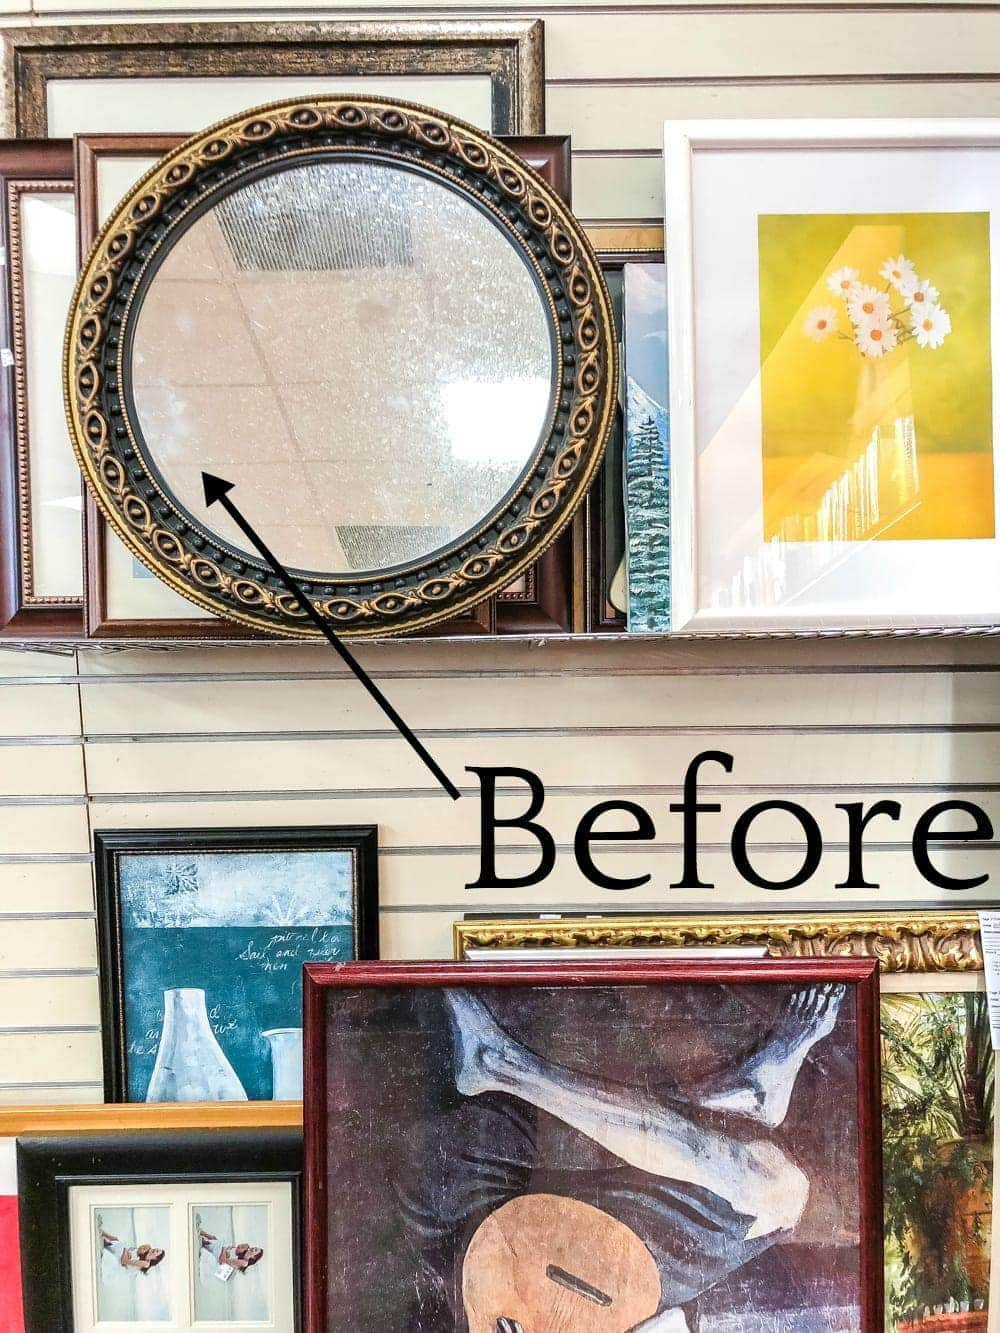 DIY Candle Tray from a Repurposed Mirror | A quick and simple way to repurpose an old mirror to make a designer knock-off candle tray and add brightness to a dark room. #candletray #repurposedmirror #thrifteddecor #budgetdecor #mirror #tabledecor #centerpiece #tray